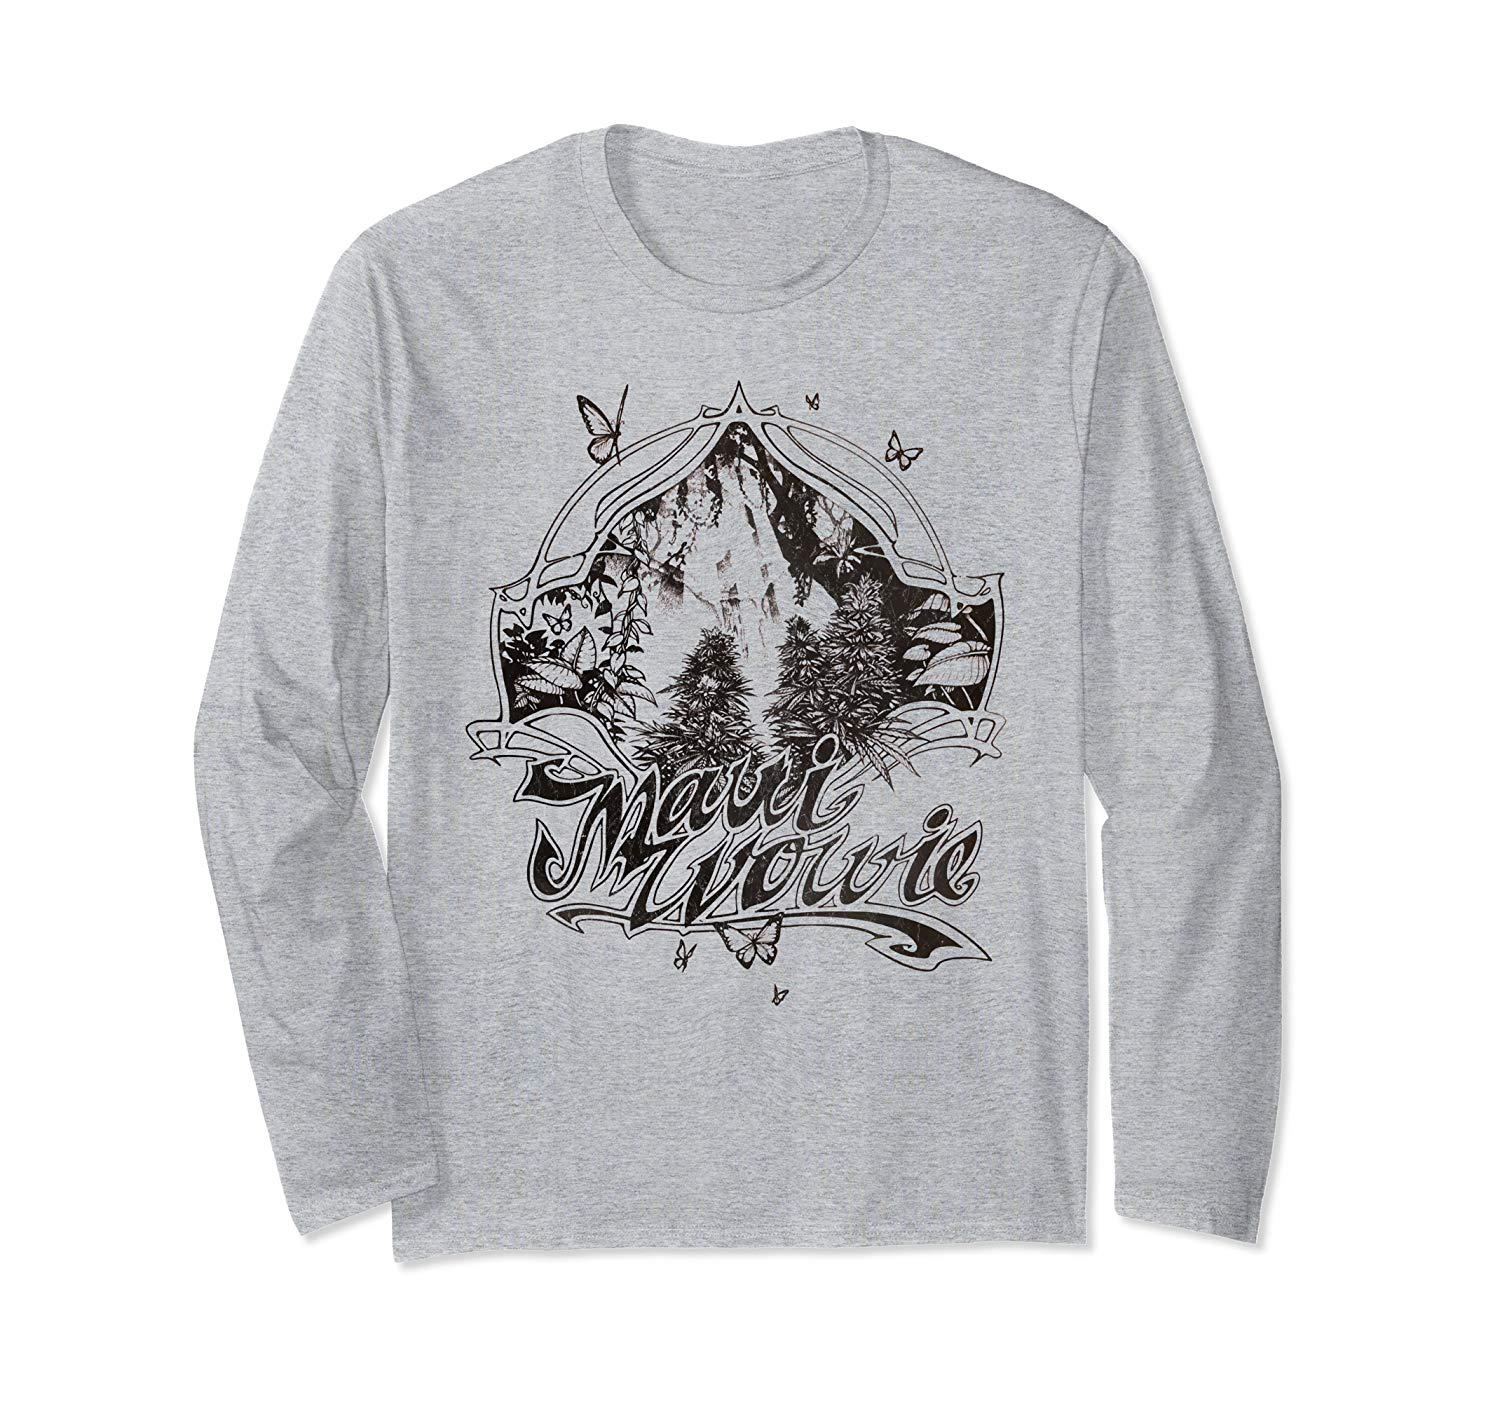 An image of the heather grey colored Maui Wowie Blackline Vintage Cannabis Long Sleeve T-shirt from Ganja Outpost